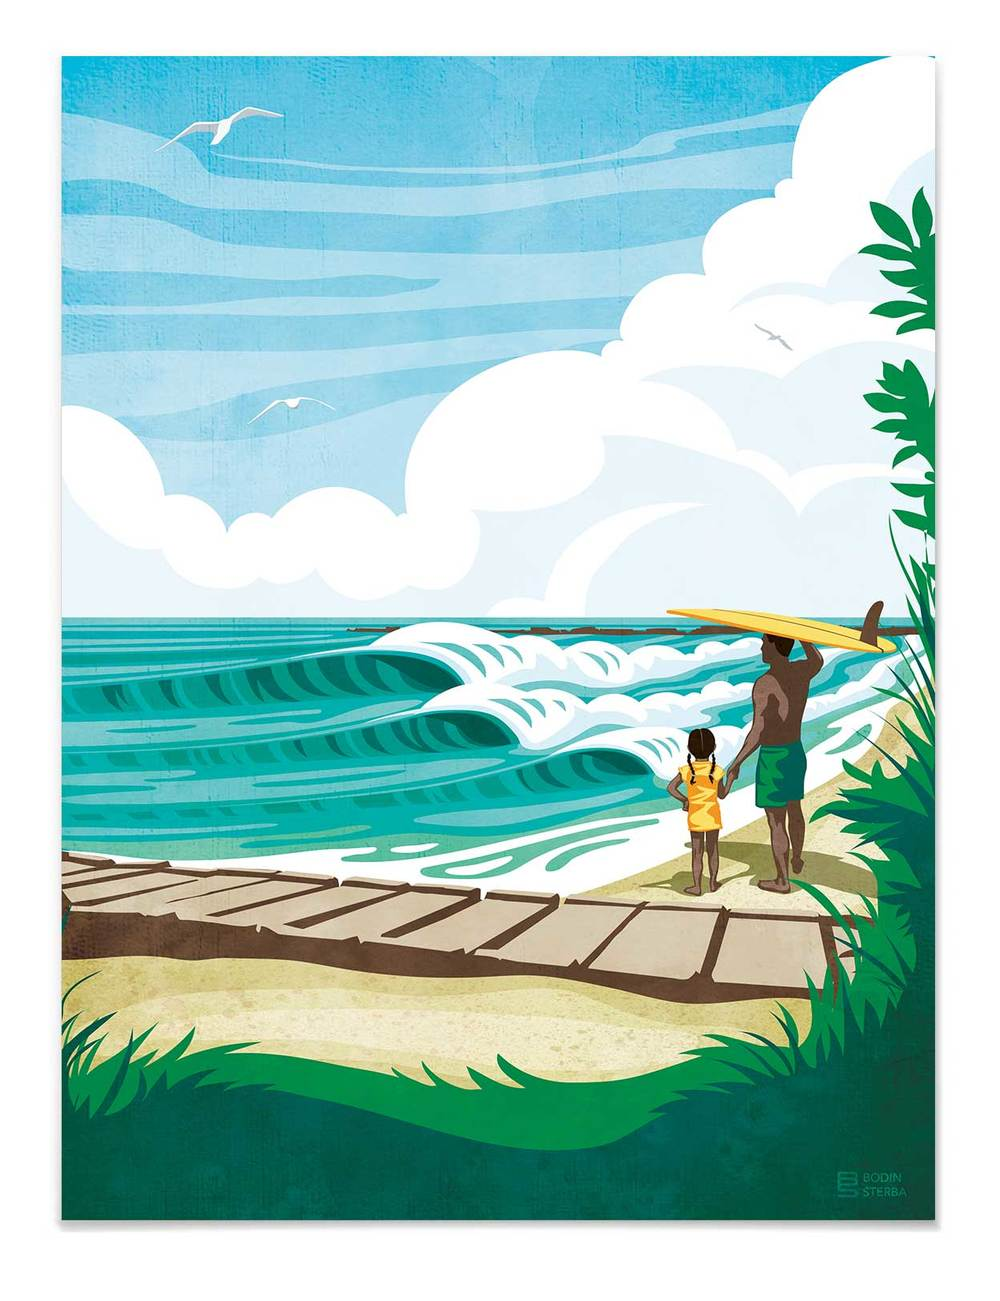 Surf@Water_Poster_2015_12x16_A.jpg